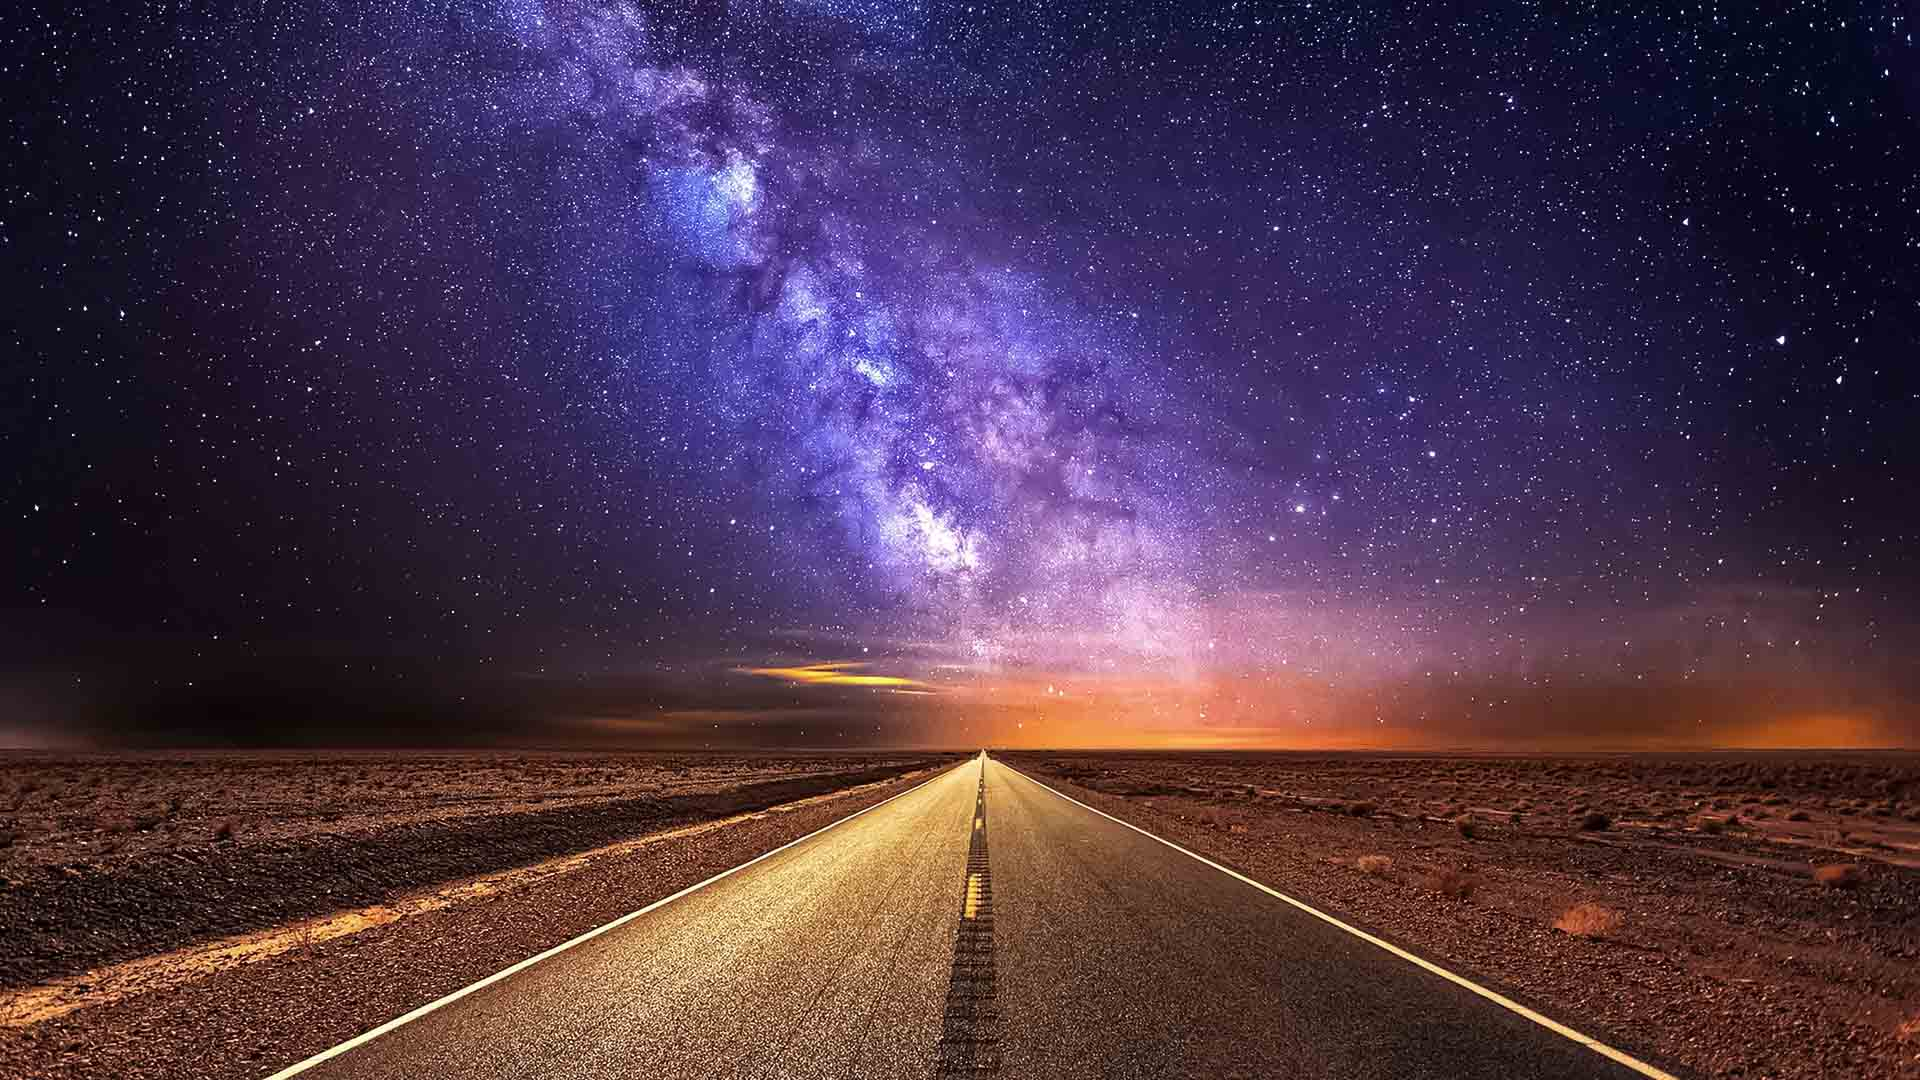 Road in the desert and the purple milky way